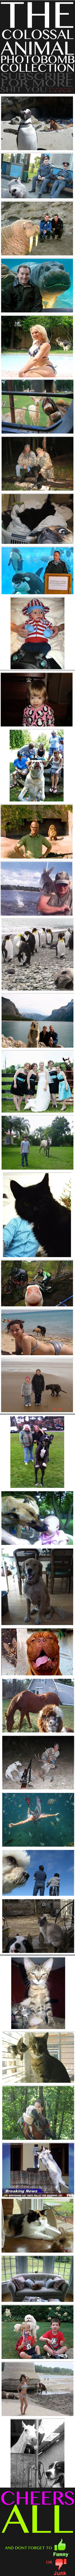 The Colossal Animal Photobomb Collection. I do loads of this all this time, subscribe if you like.